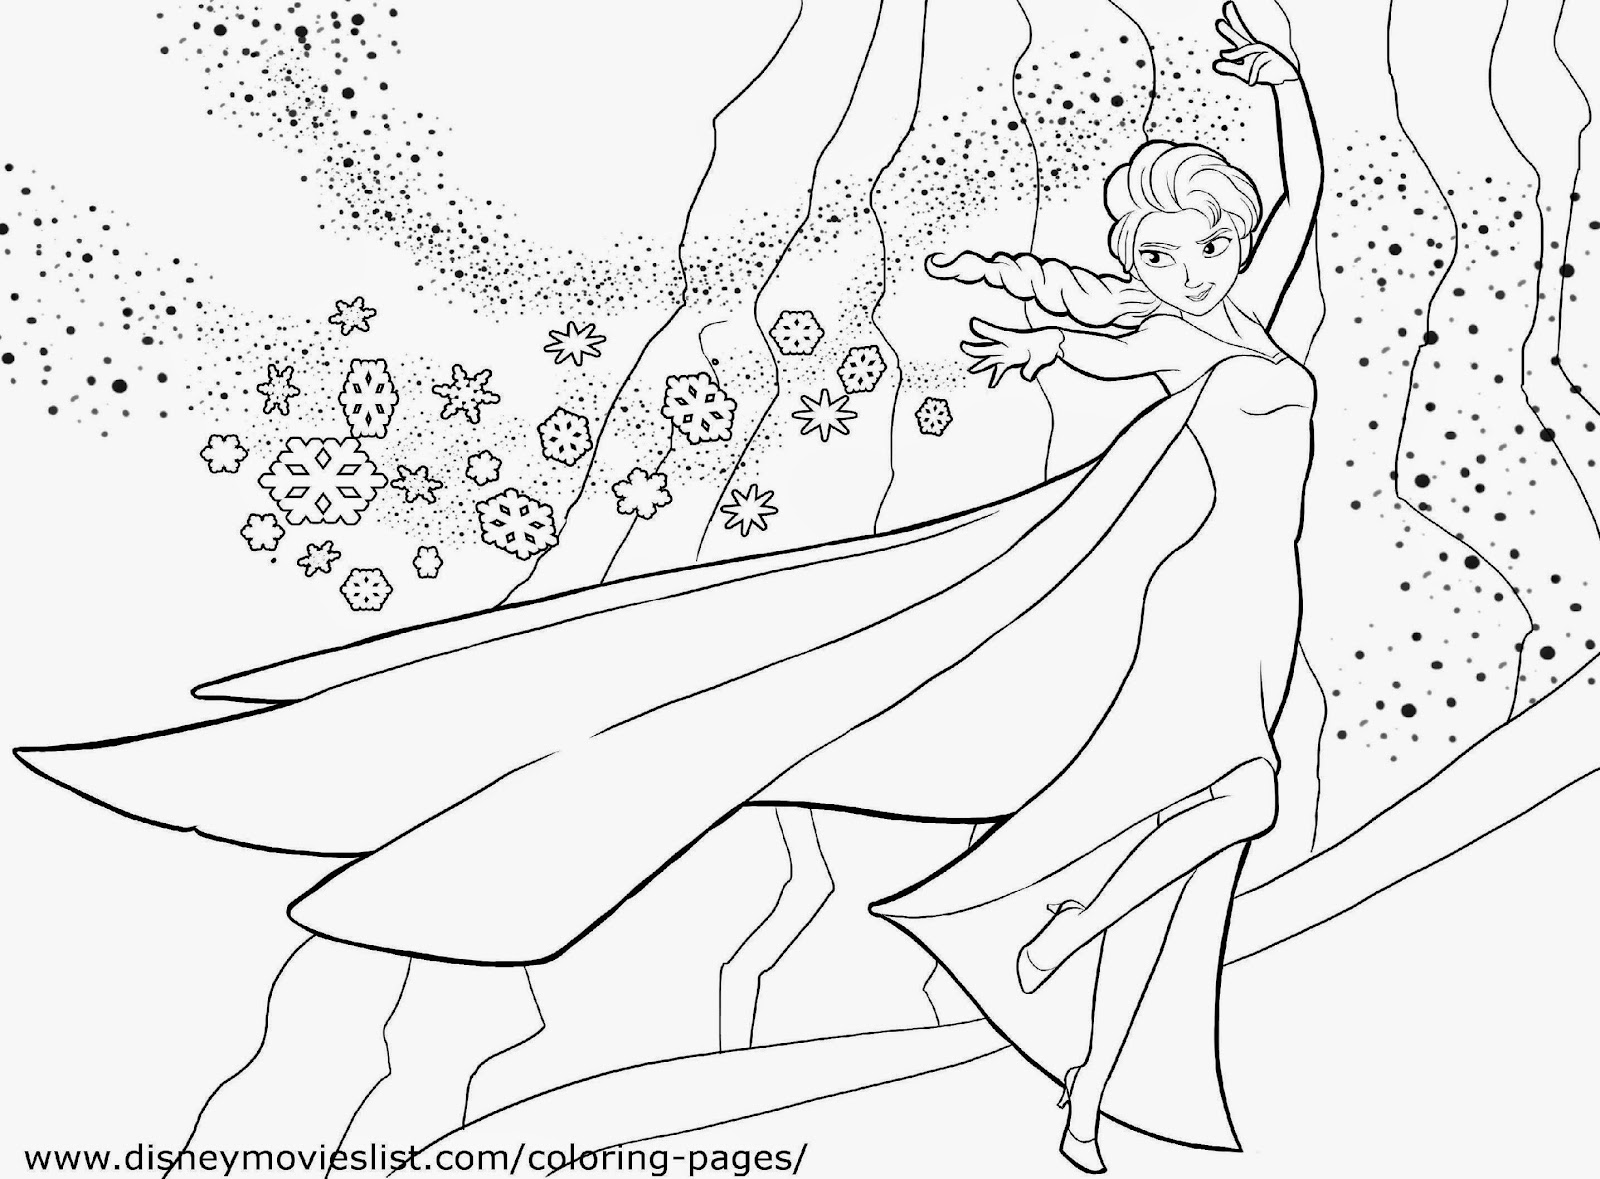 Frozen coloring sheet free coloring sheet for Frozen coloring pages anna and elsa